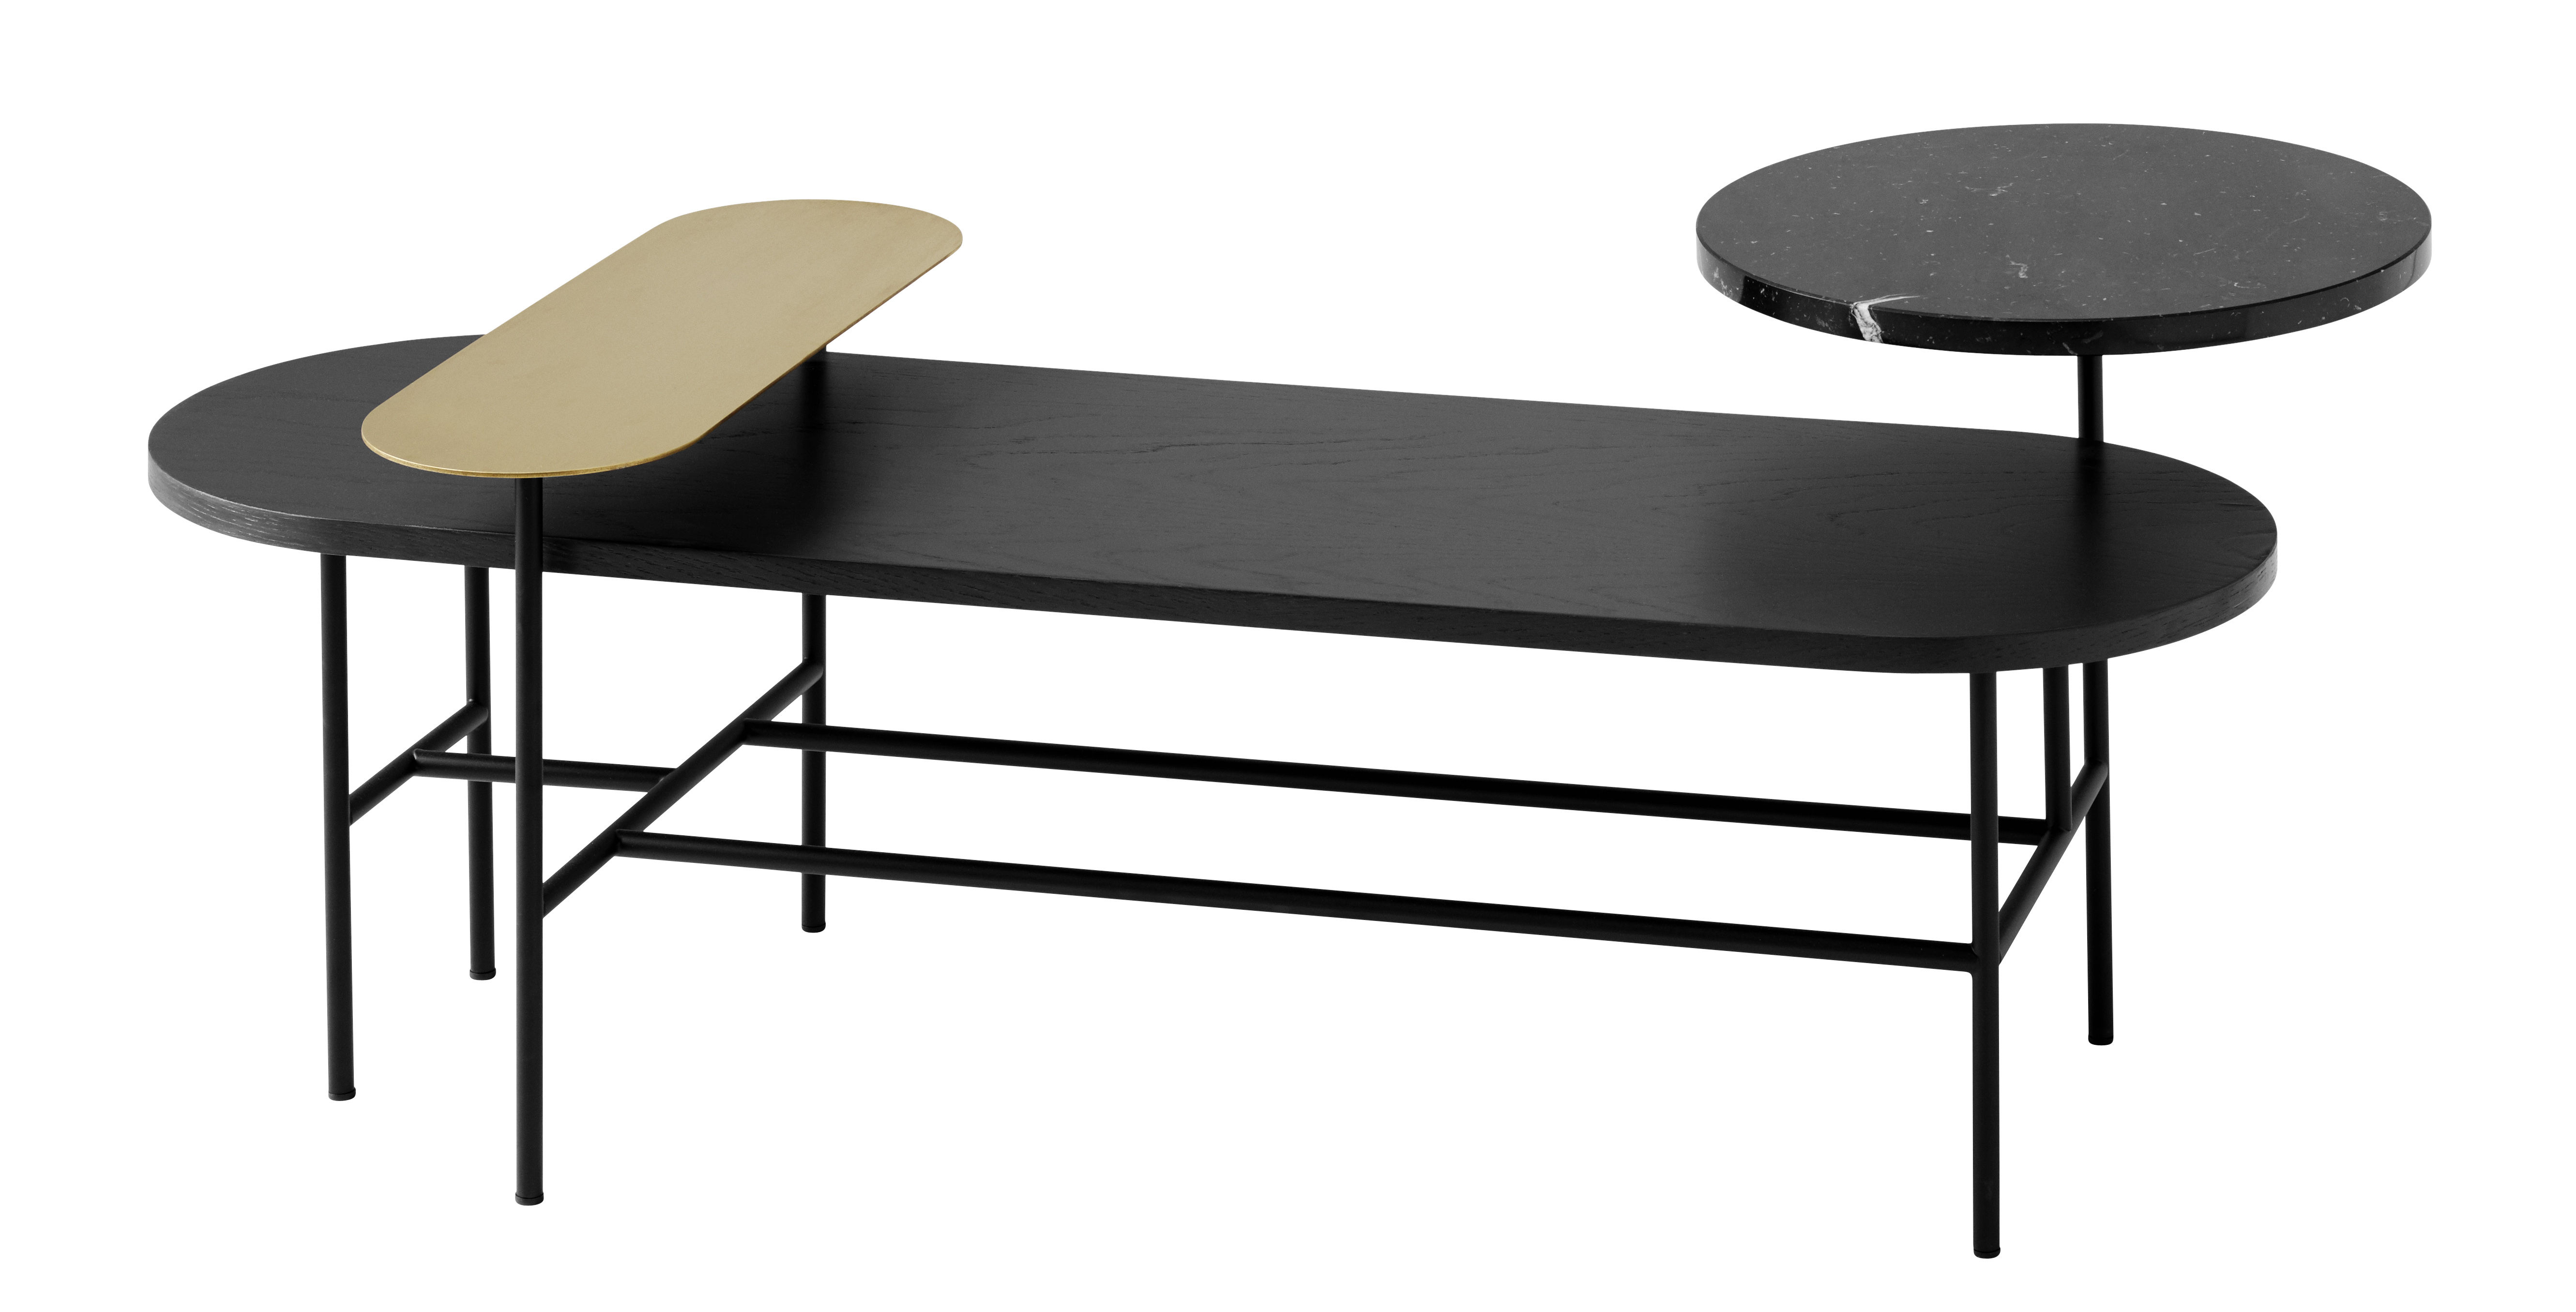 Furniture - Coffee Tables - Palette JH7 Coffee table - 3 tops by &tradition - Black / Gold - Ashwood, Brass, Marble, Steel